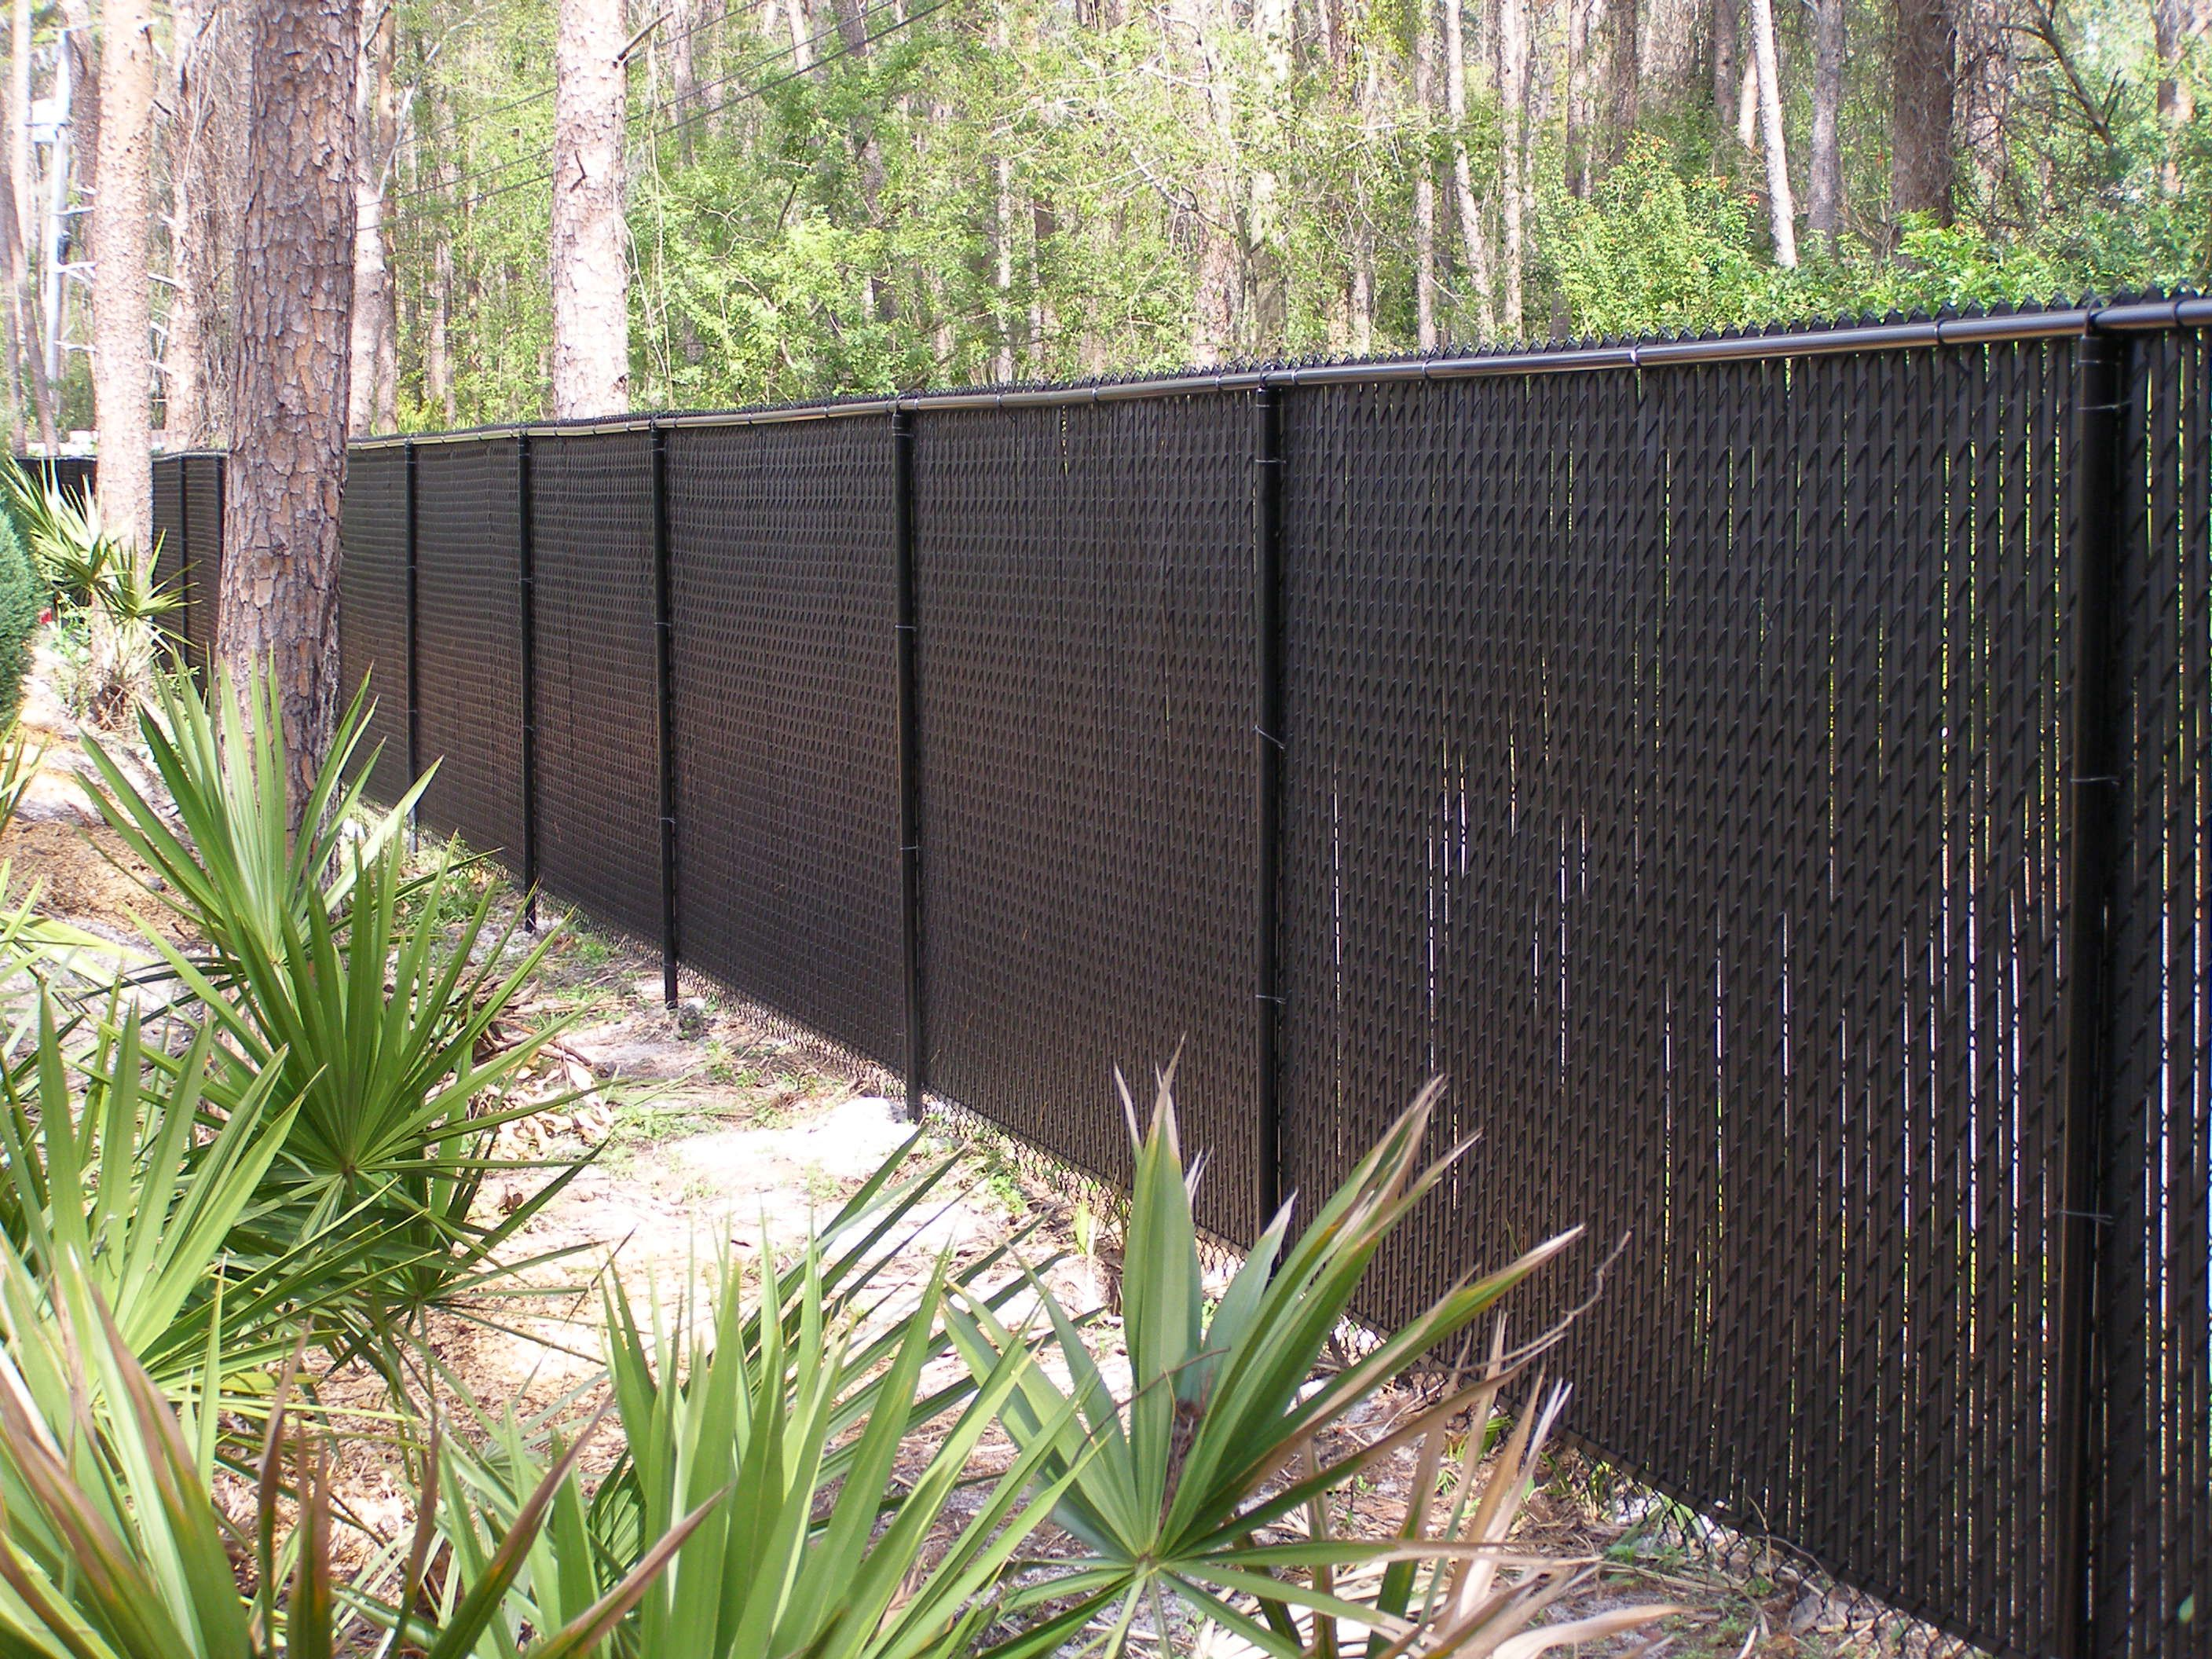 Chain Link Fence Vinyl Slats Google Search Black Chain Link